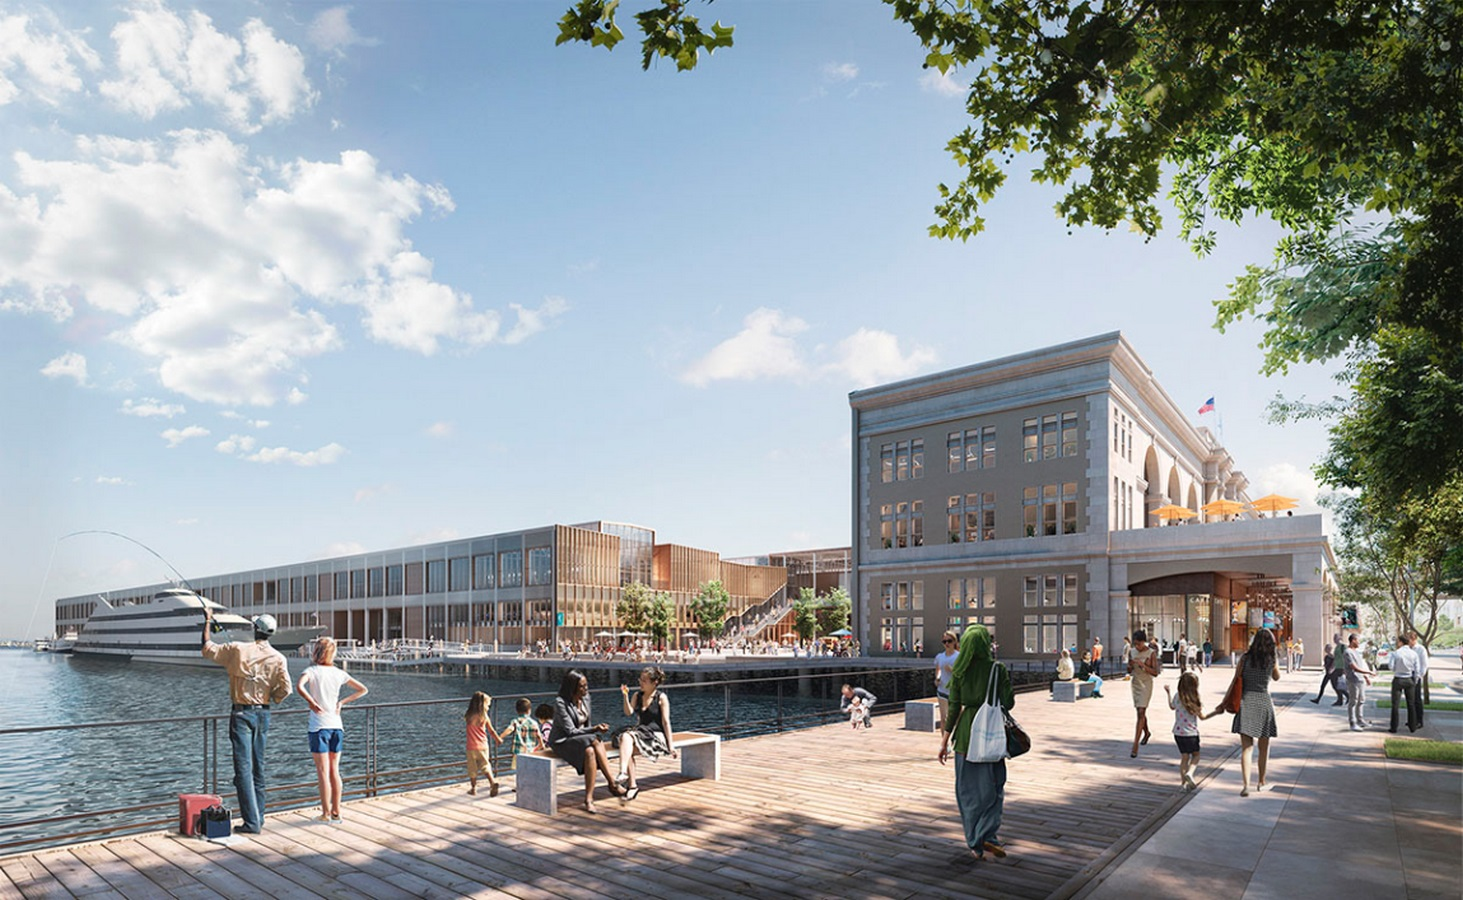 Construction begins on redesigning of Boston's Seaport World Trade Center by Schmidt Hammer Lassen Architects - Sheet5